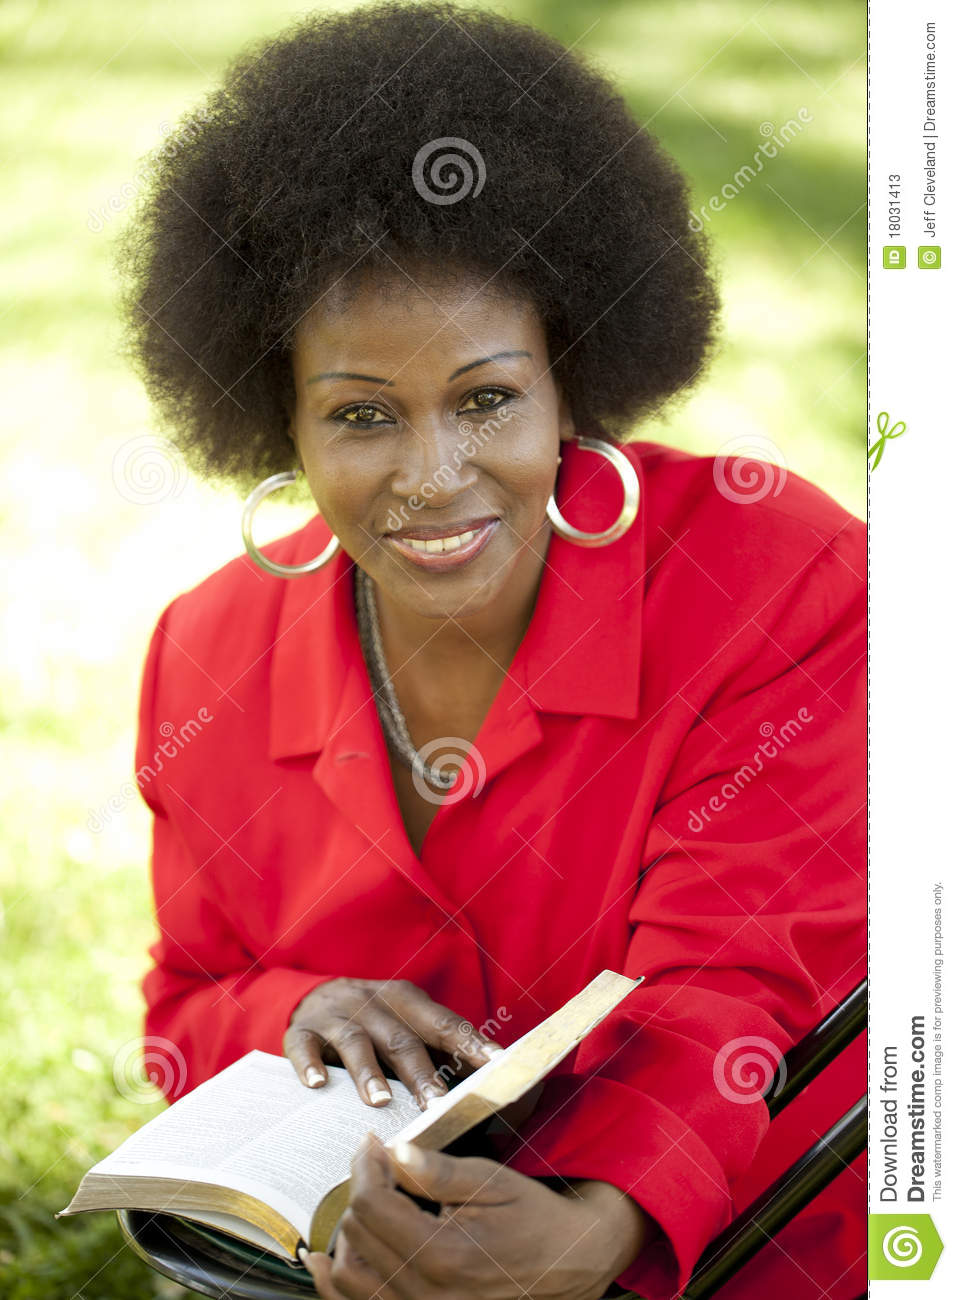 Middle-aged Black woman outdoor